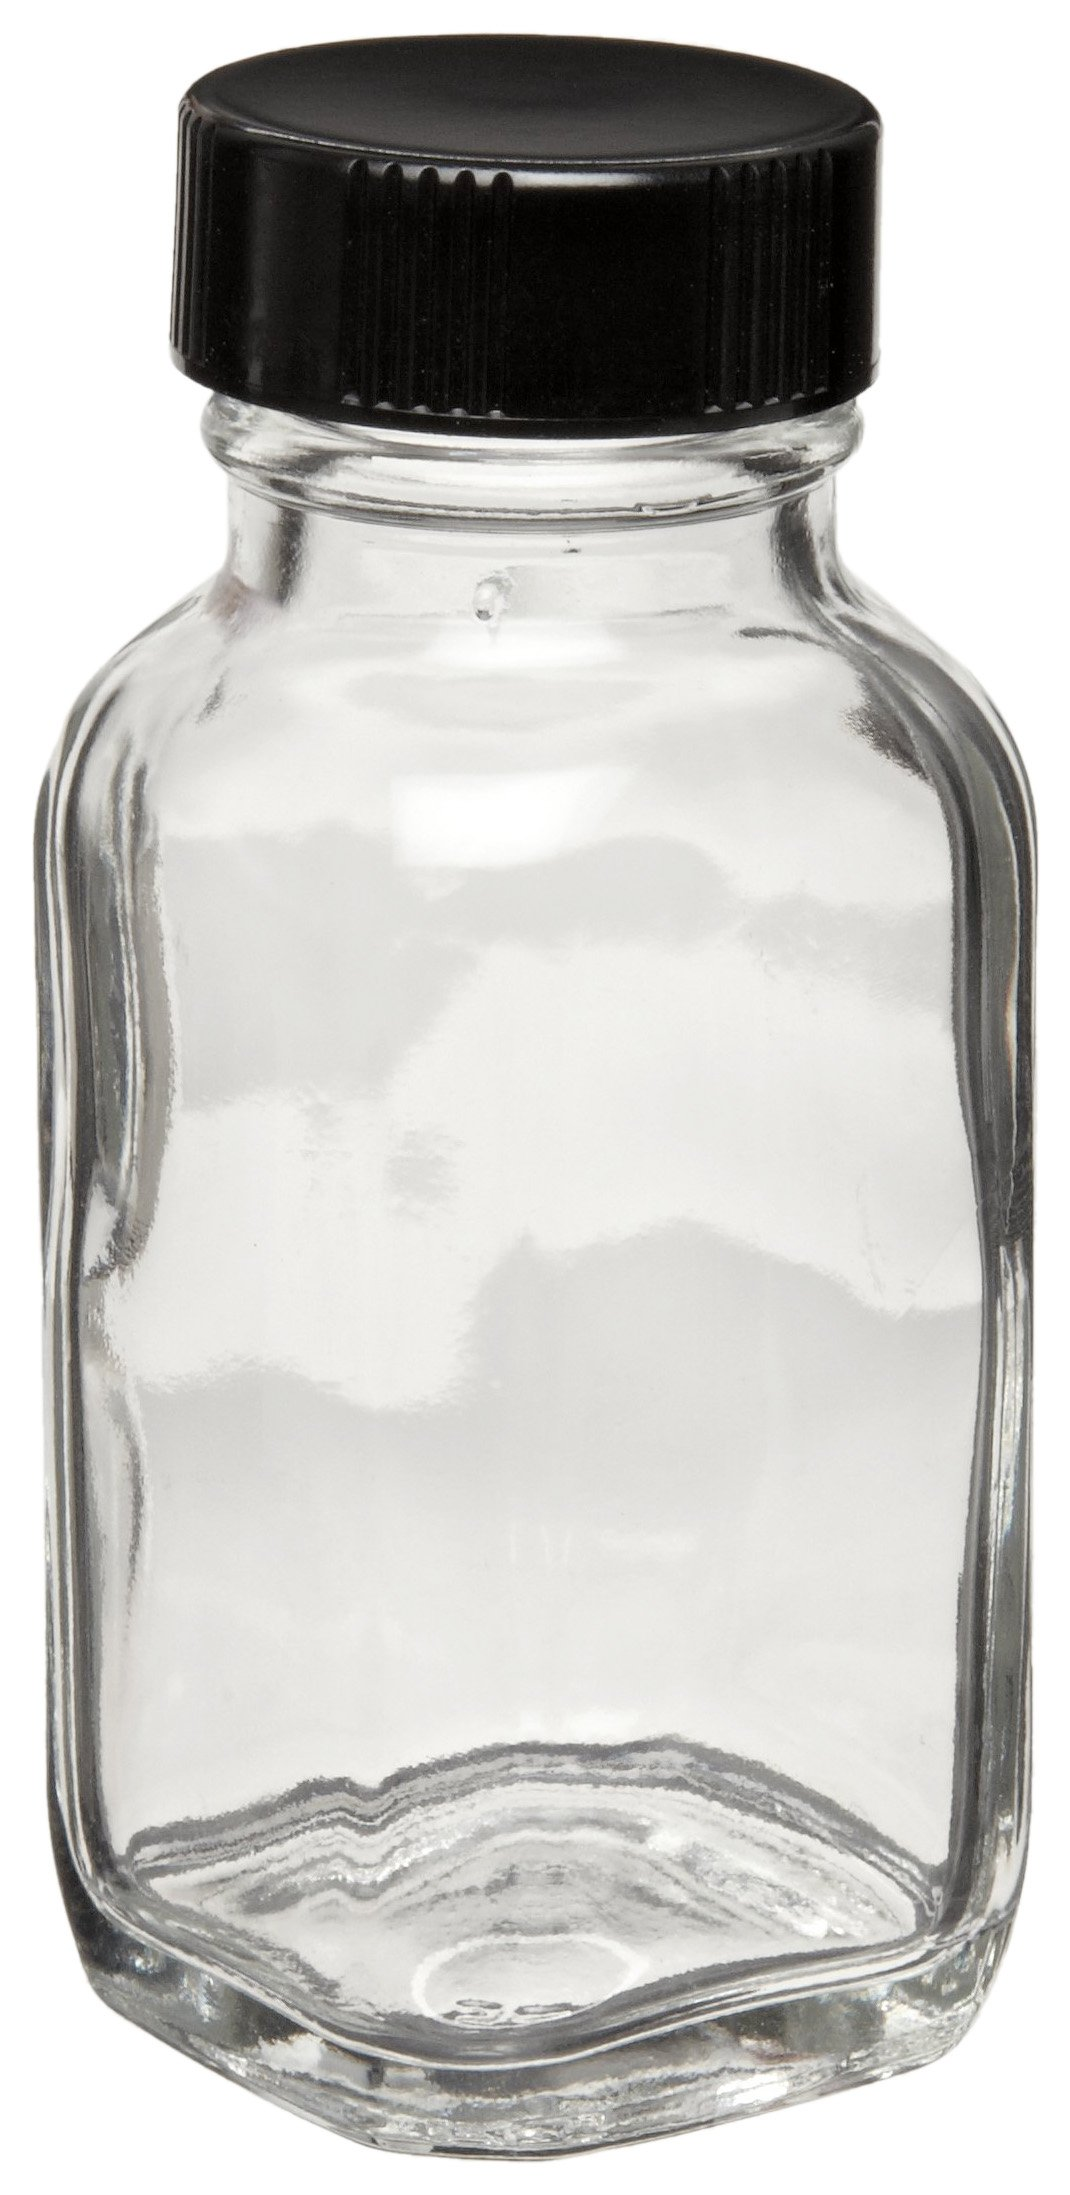 Wheaton W216891 French Square Bottle, Clear Glass, Capacity 2oz With 28-400 Black Phenolic Poly-Seal Lined Screw Cap, Diameter 39mm x 87mm (Case Of 48)